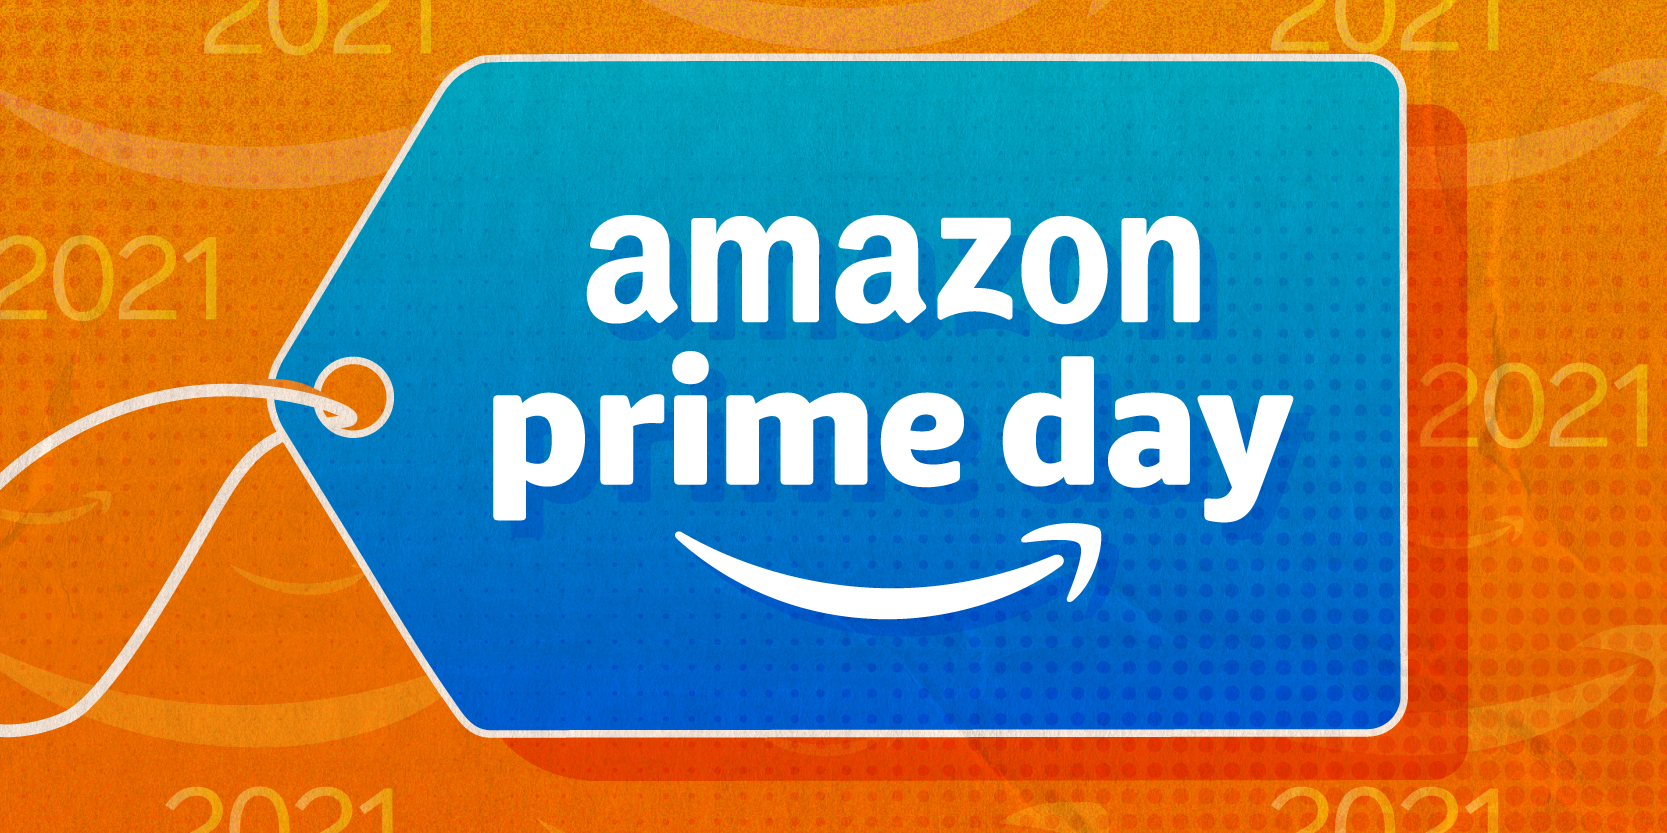 Don't miss these awesome last-minute Prime Day deals on popular Nintendo Switch games, including Zelda and Mario titles